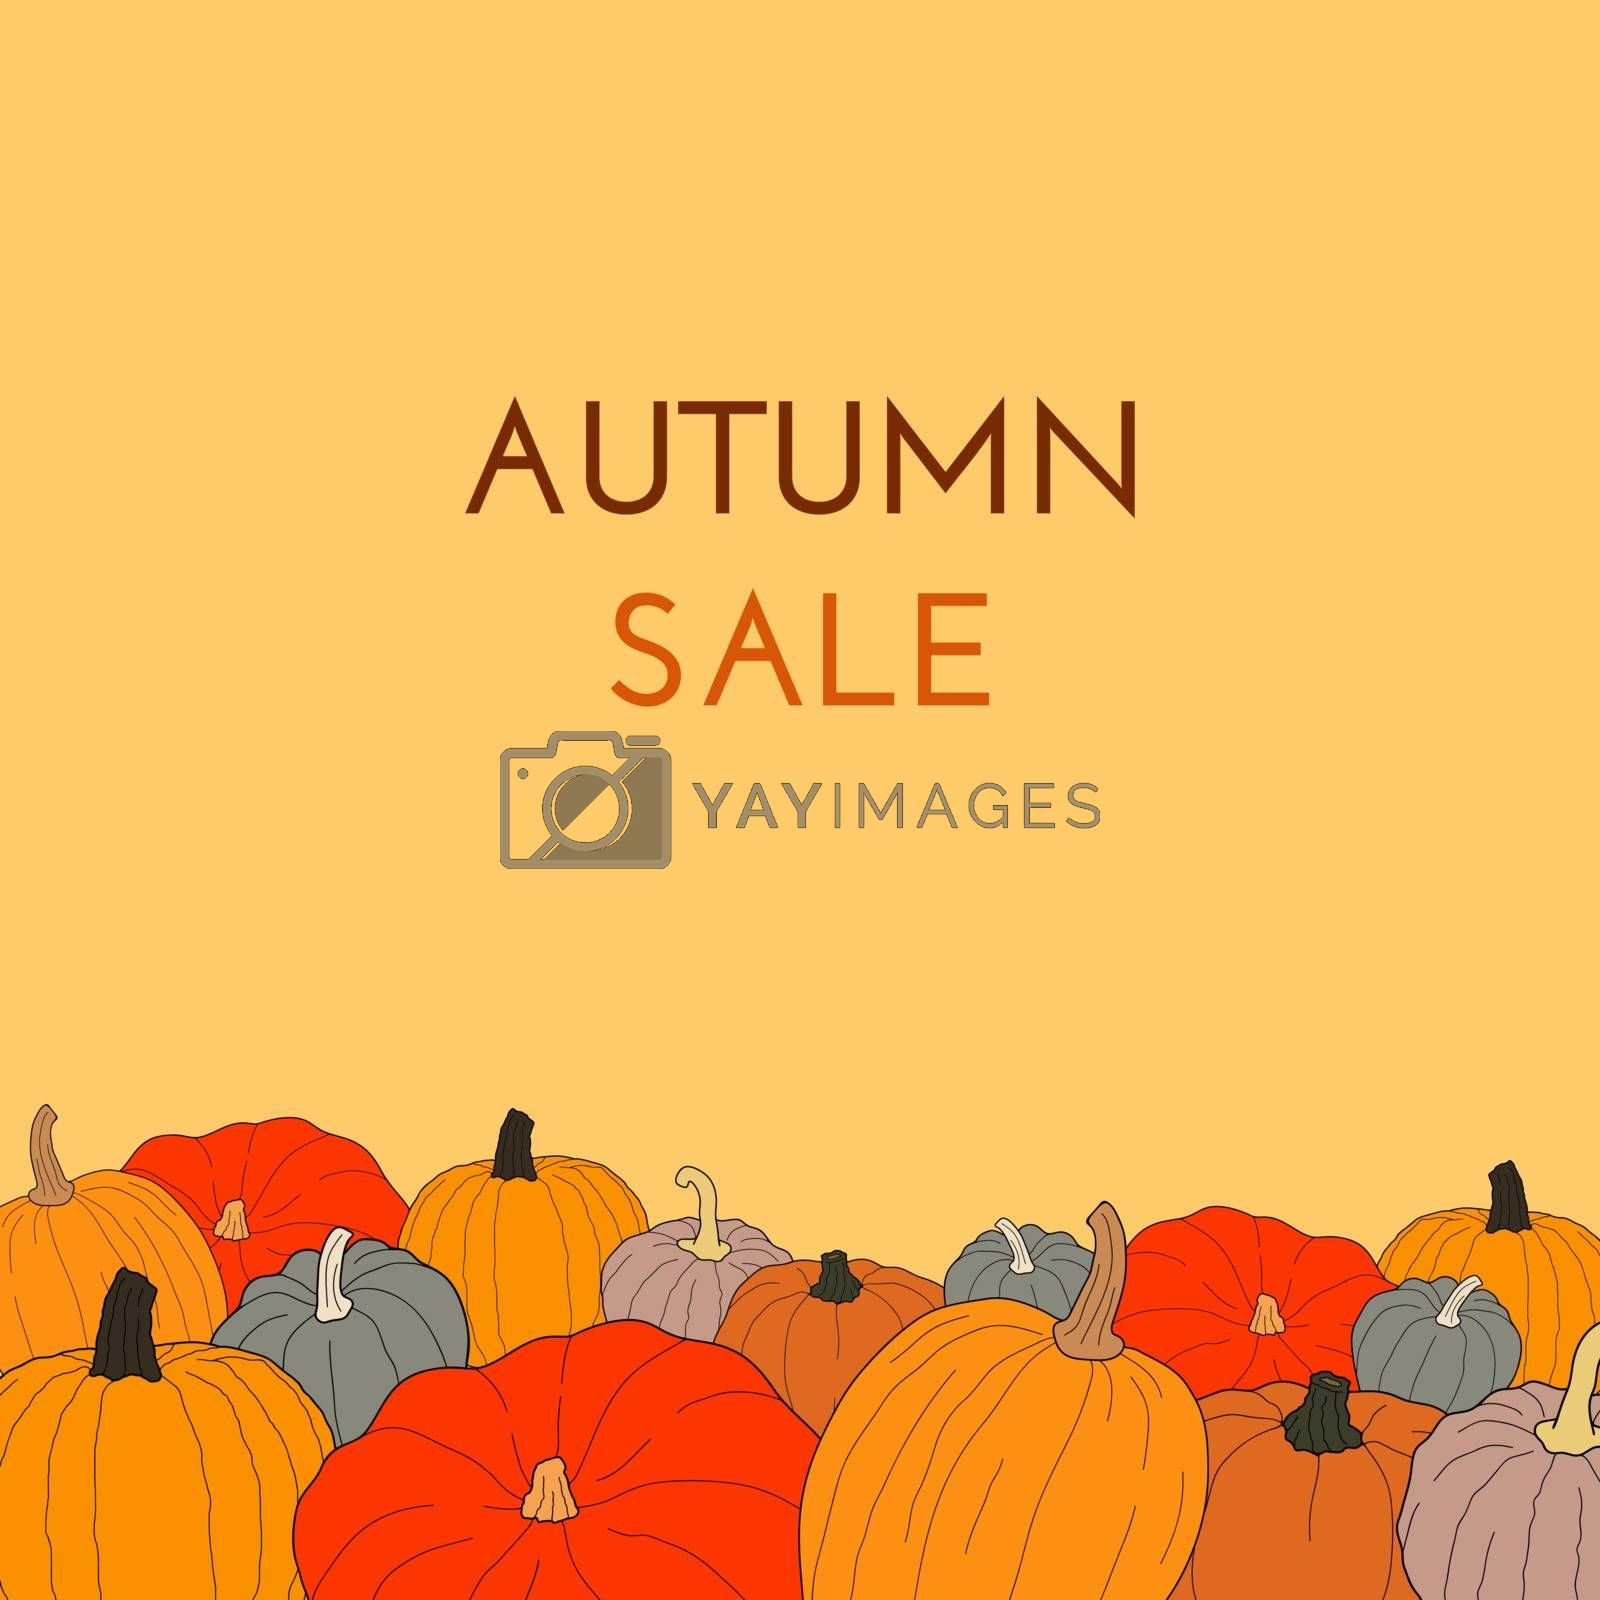 Autumn sale text vector banner with colorful pumpkins on orange background for shopping discount promotion. Vector illustration on doodle style.